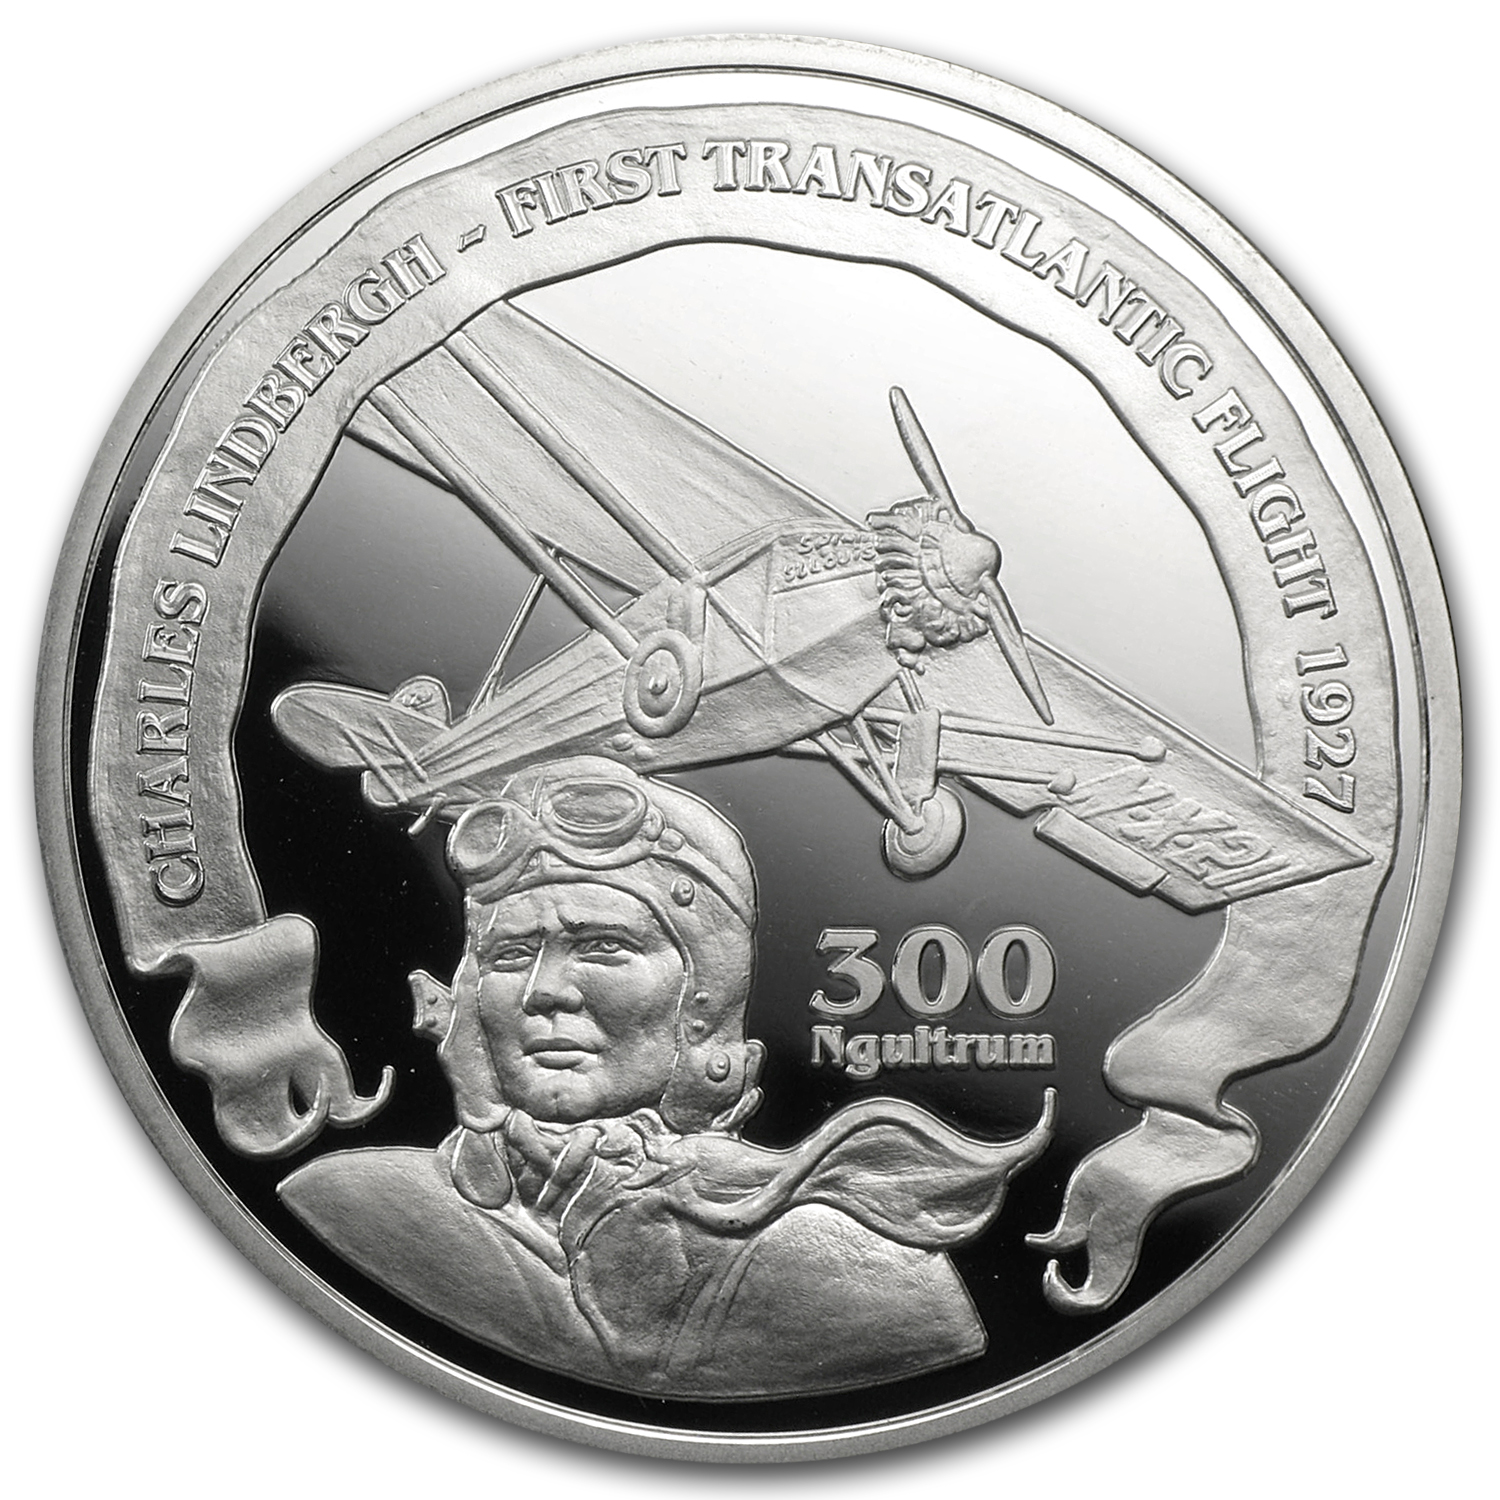 2010 Bhutan Silver Transatlantic Flight Charles Lindbergh Proof